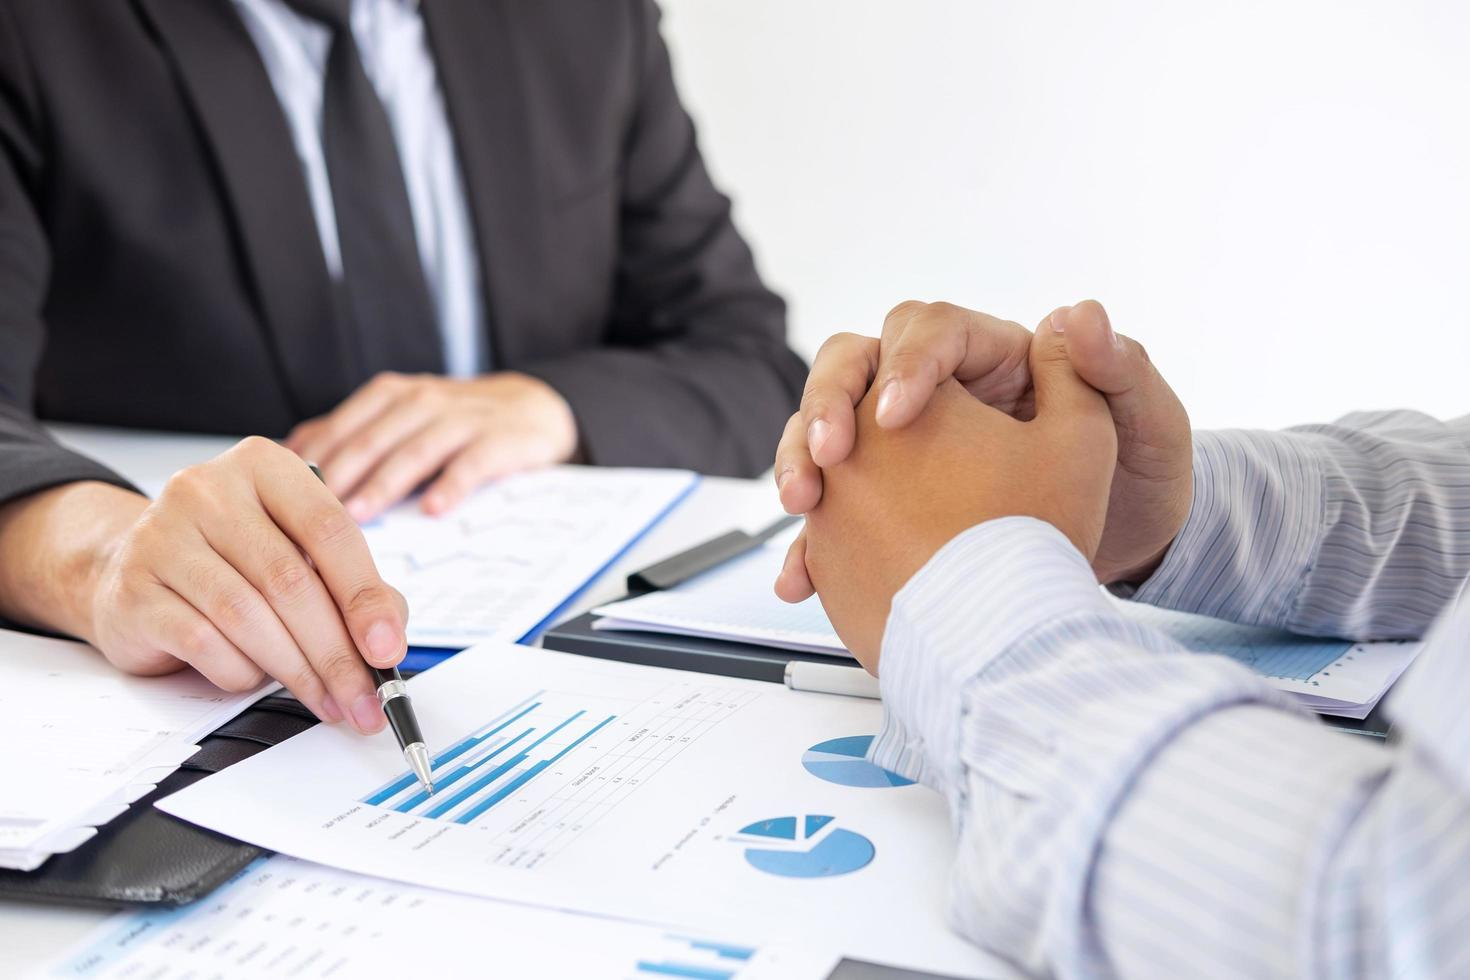 Two people discuss business plan photo